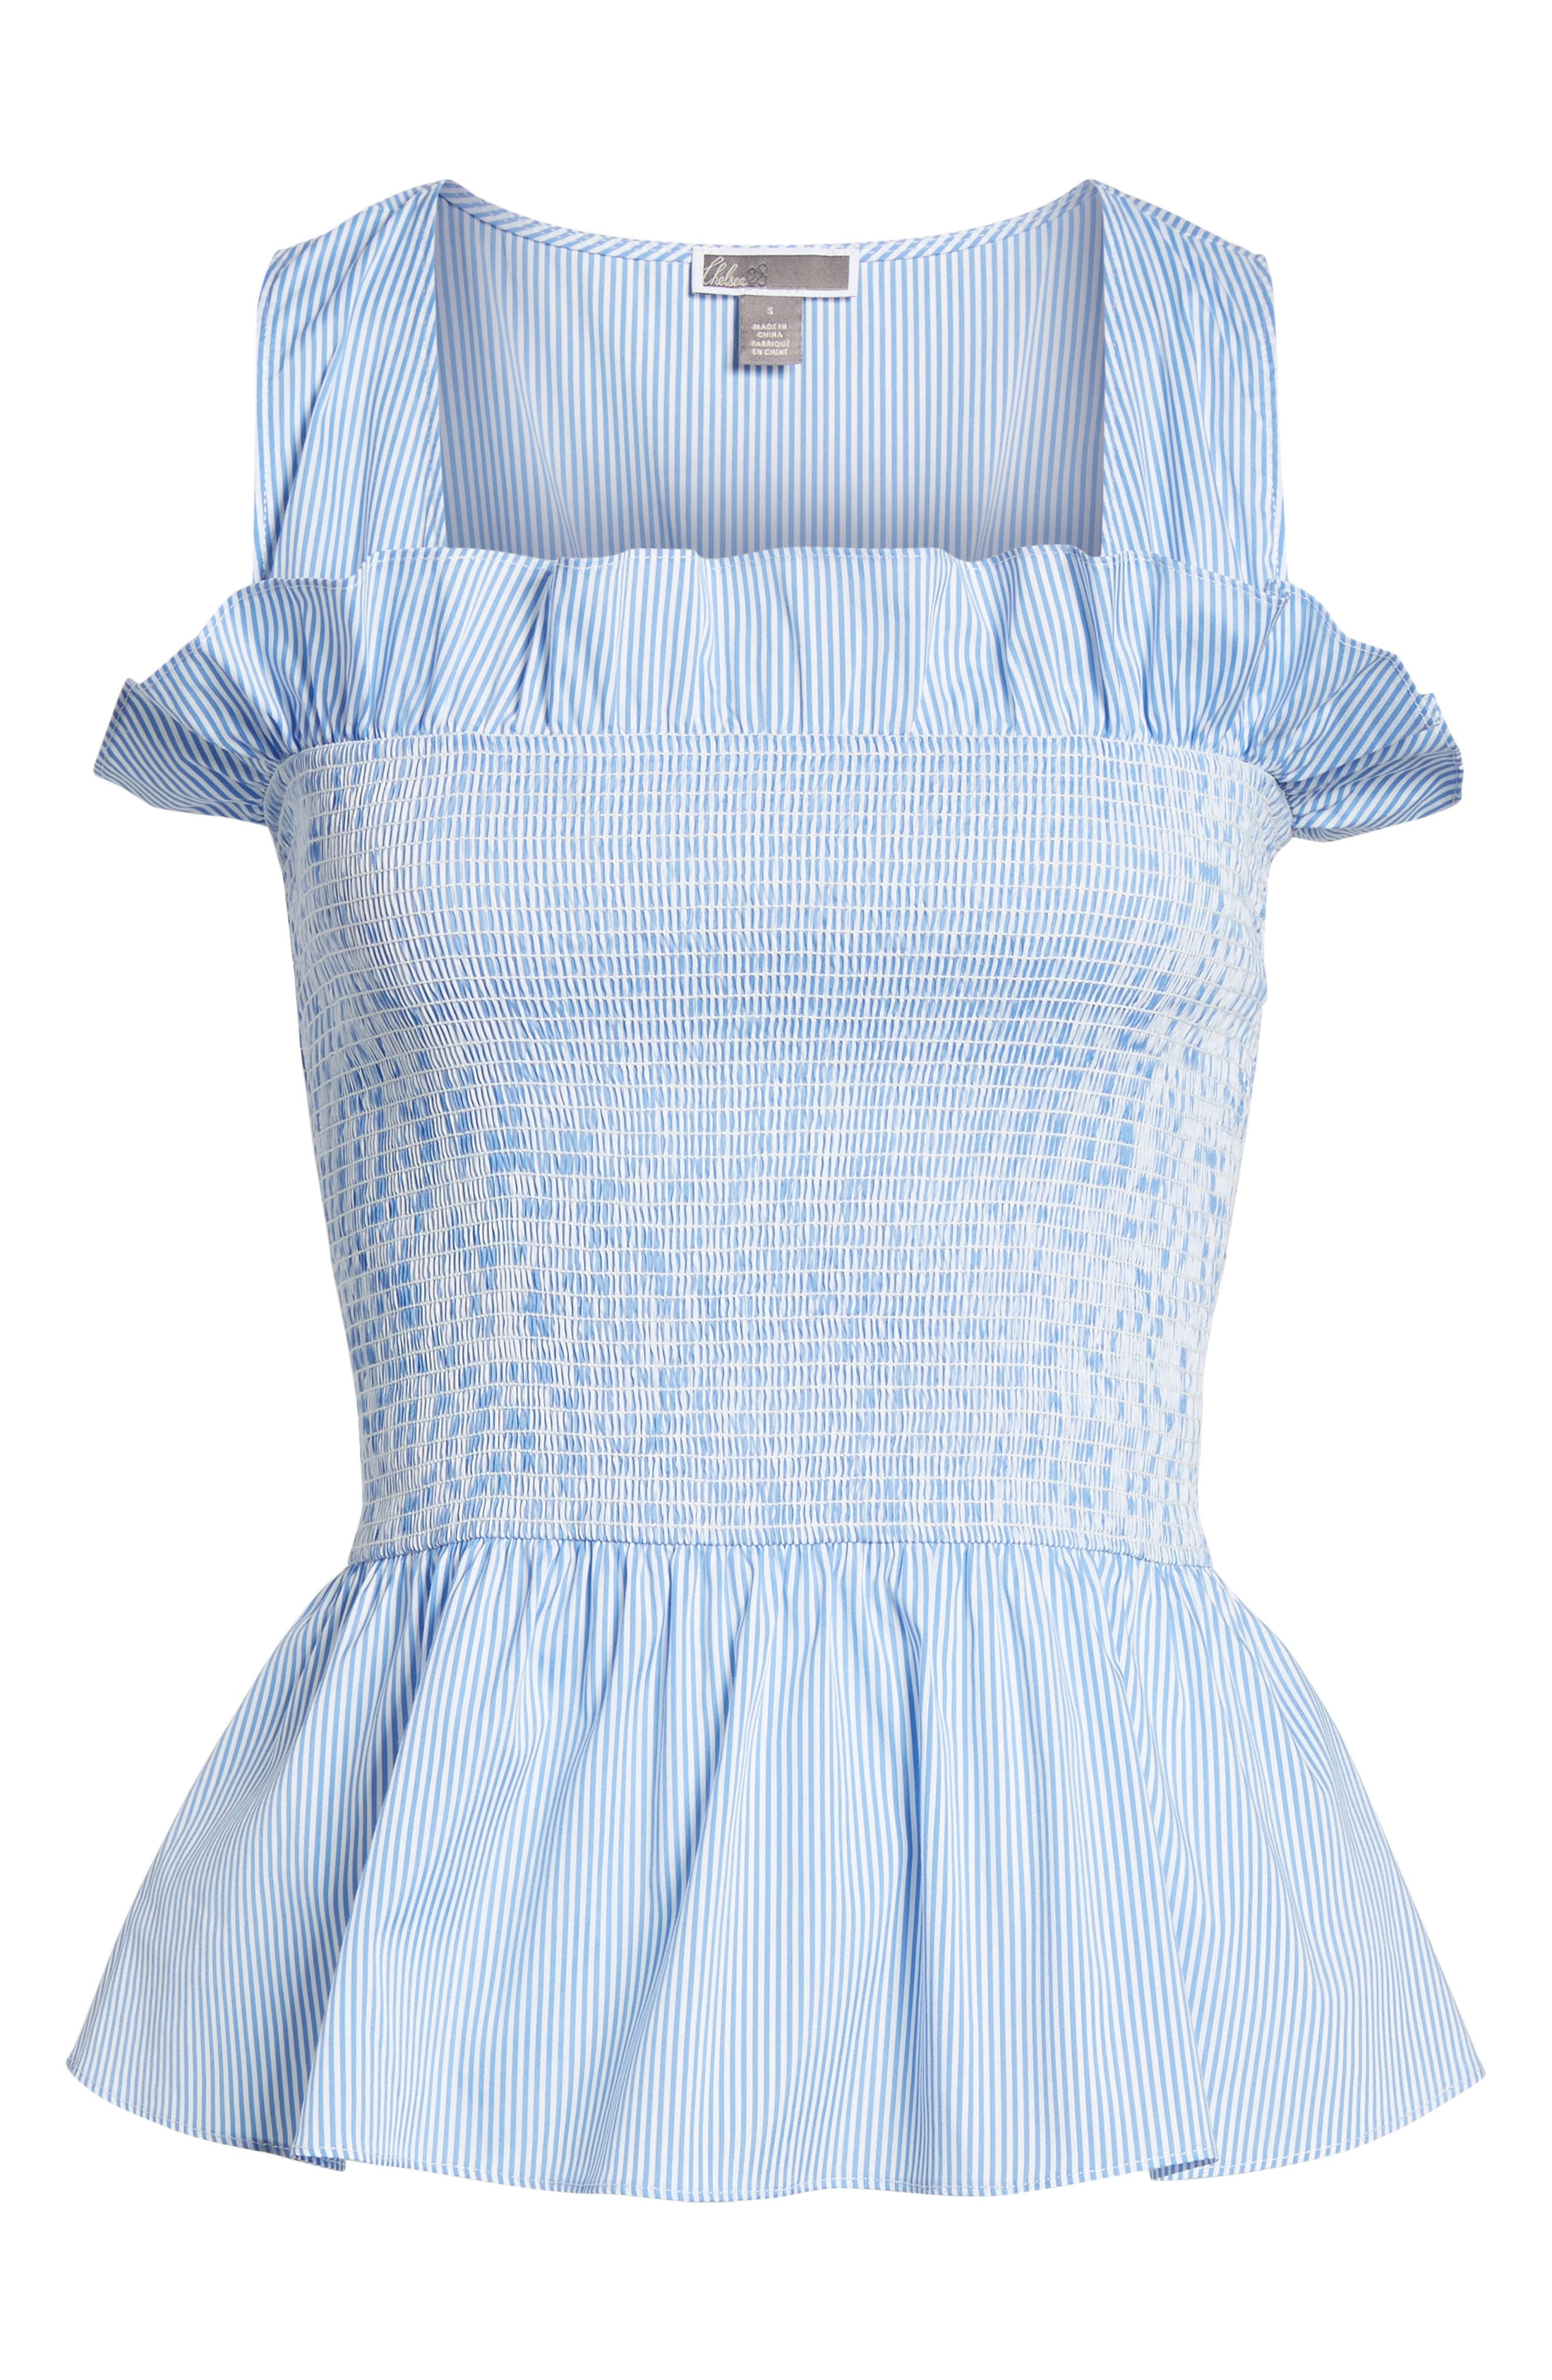 Smocked Bustier Top,                             Alternate thumbnail 6, color,                             420